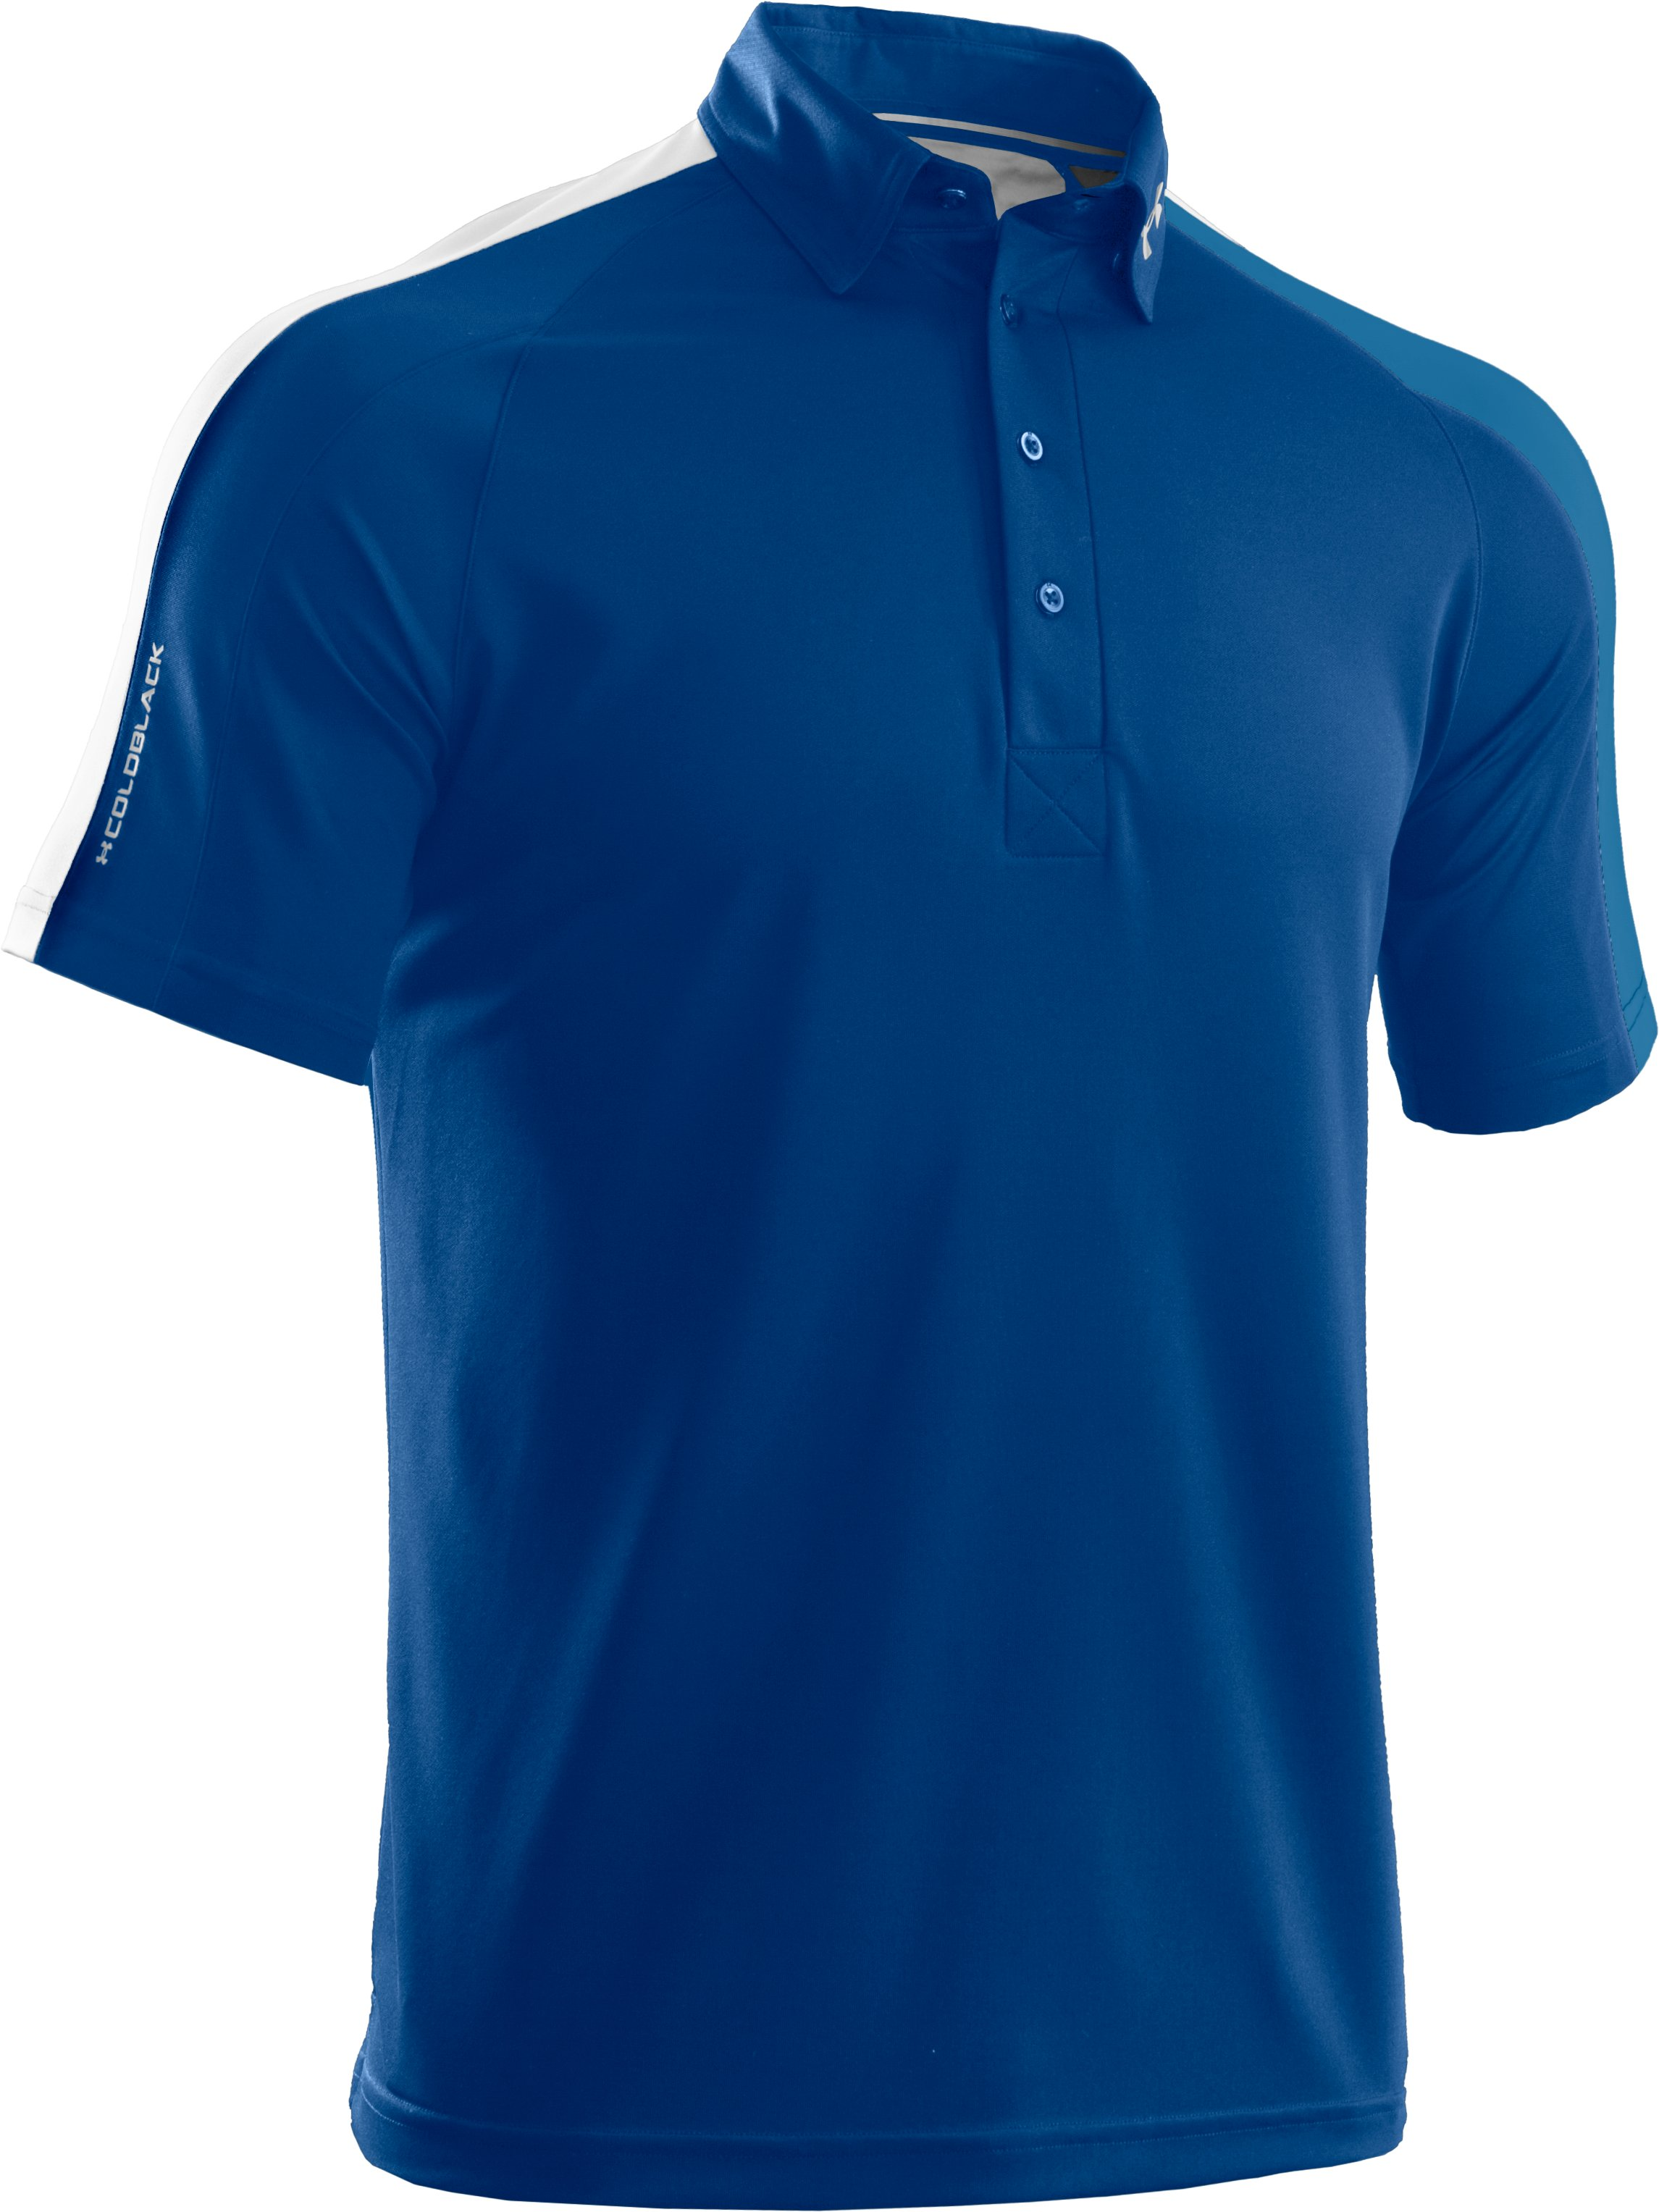 Men's coldblack® Colorblock Polo, EMPIRE BLUE, undefined